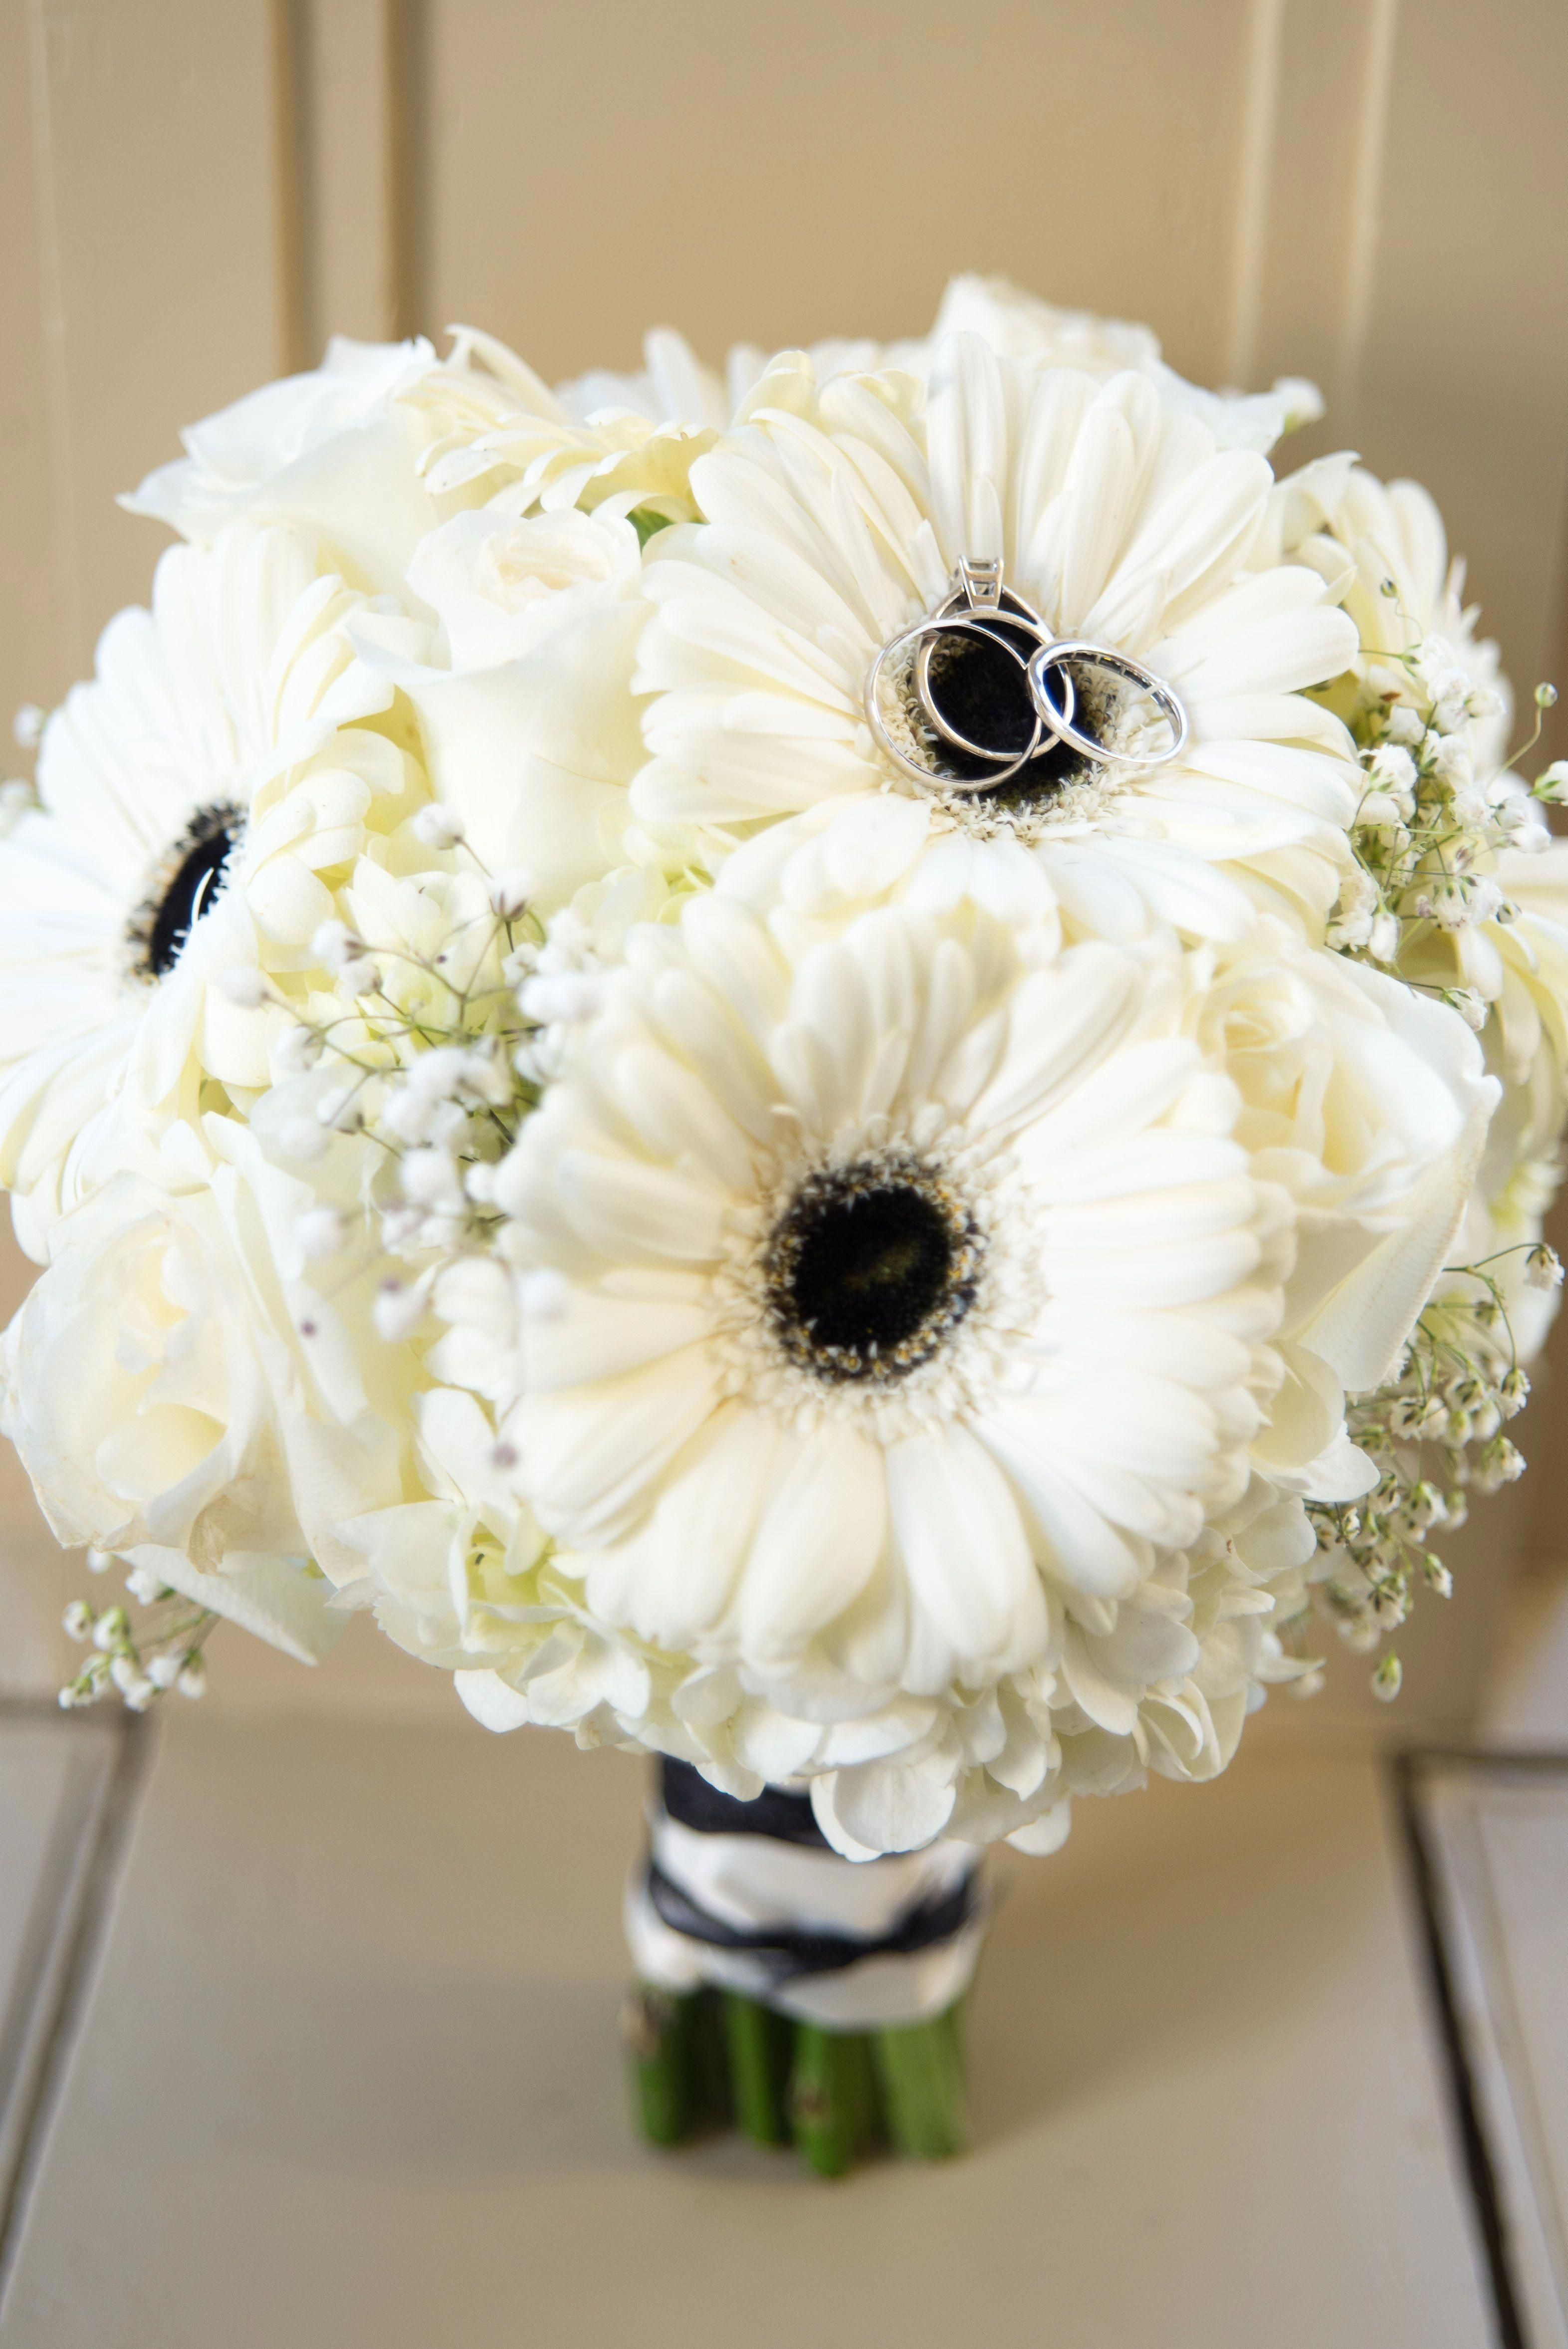 Black And White Gerbera Daisy Bouquet By Flowers Make Scents Midlothian Va White Wedding Bouquets Gerbera Daisy Bouquet Daisy Bouquet Wedding